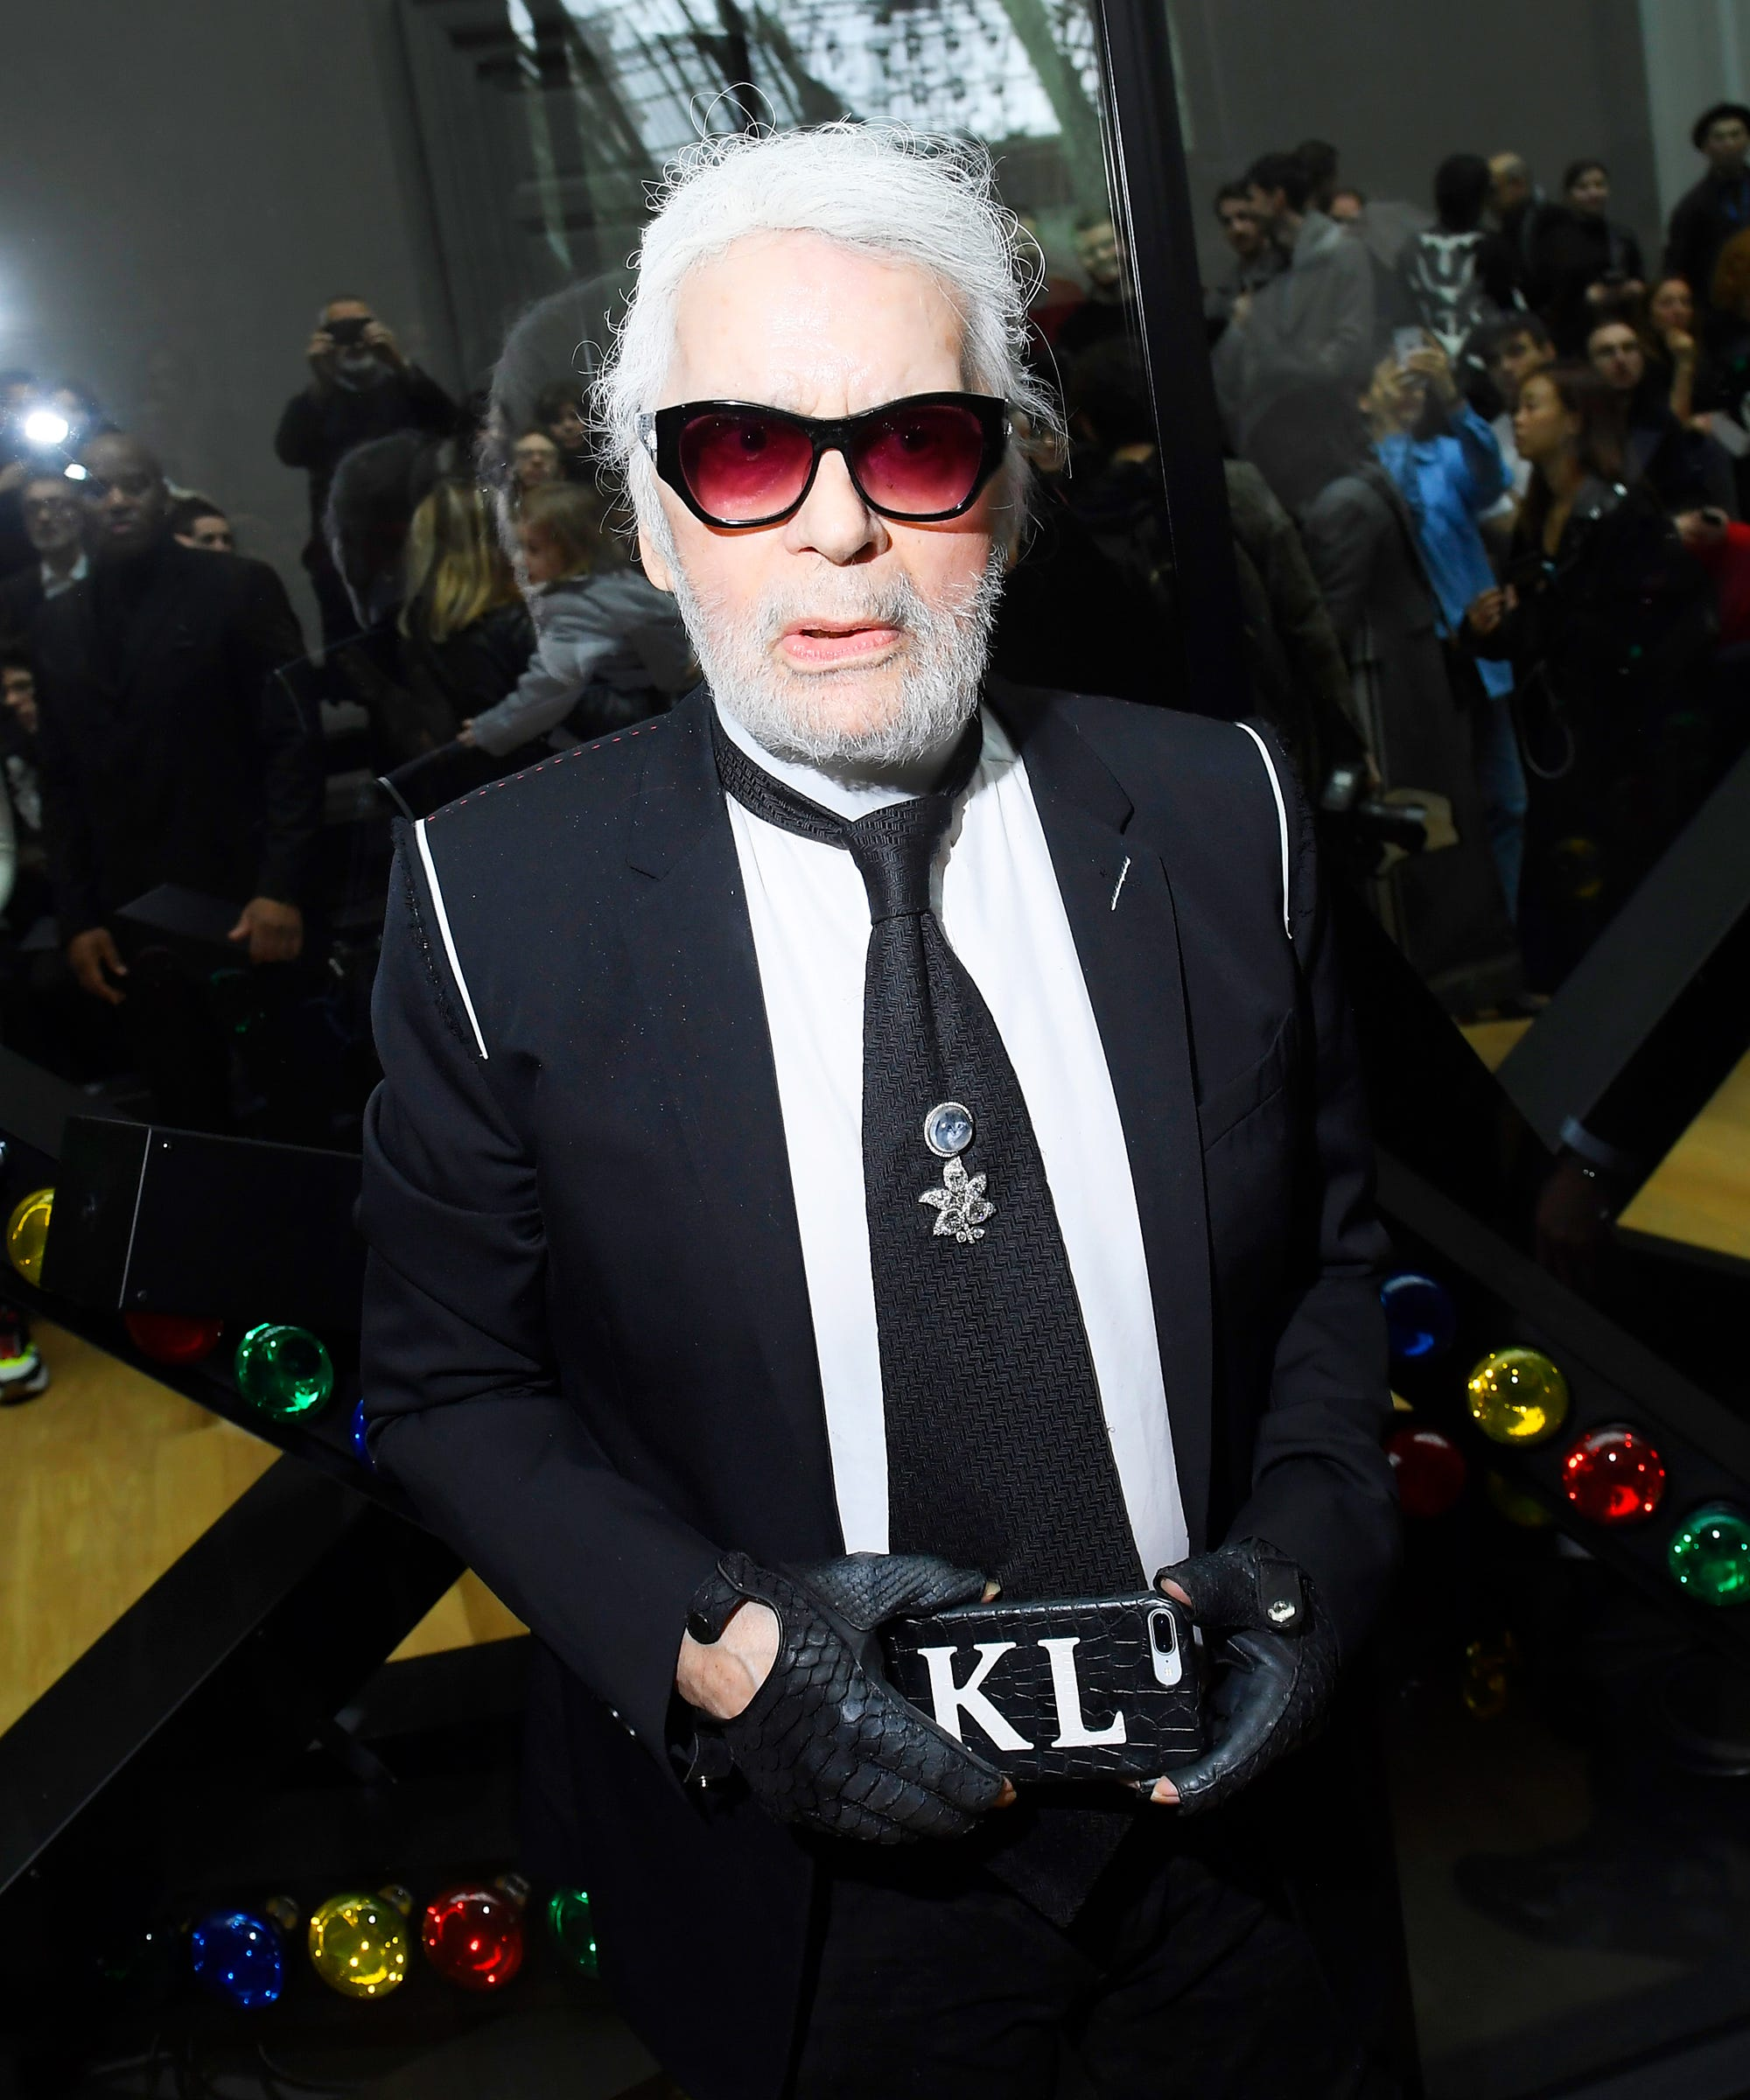 pictures Why Karl Lagerfeld Refuses to Go to a New Exhibit of His Work